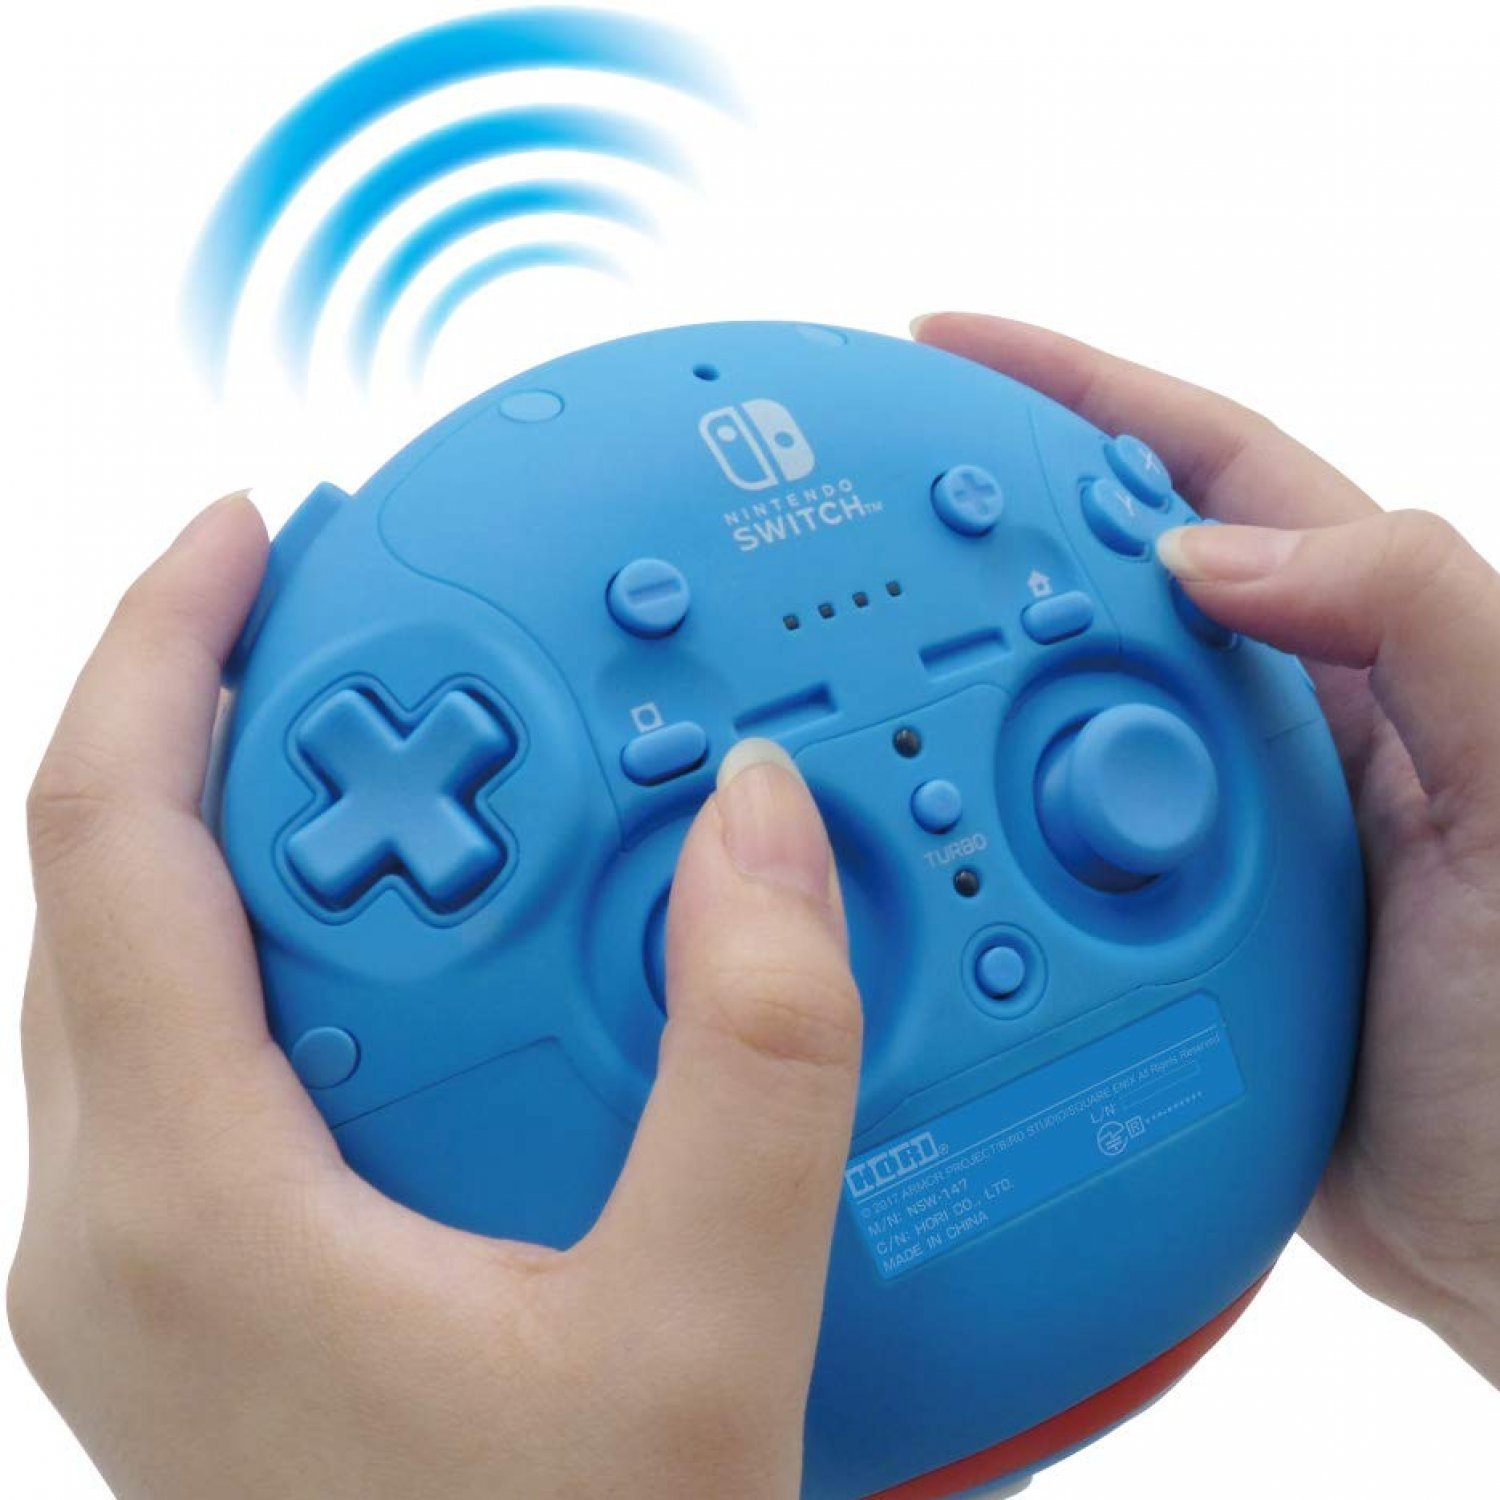 IMAGE(https://s.pacn.ws/1500/x5/dragon-quest-slime-wireless-controller-for-nintendo-switch-596837.1.jpg?pt0y3w)